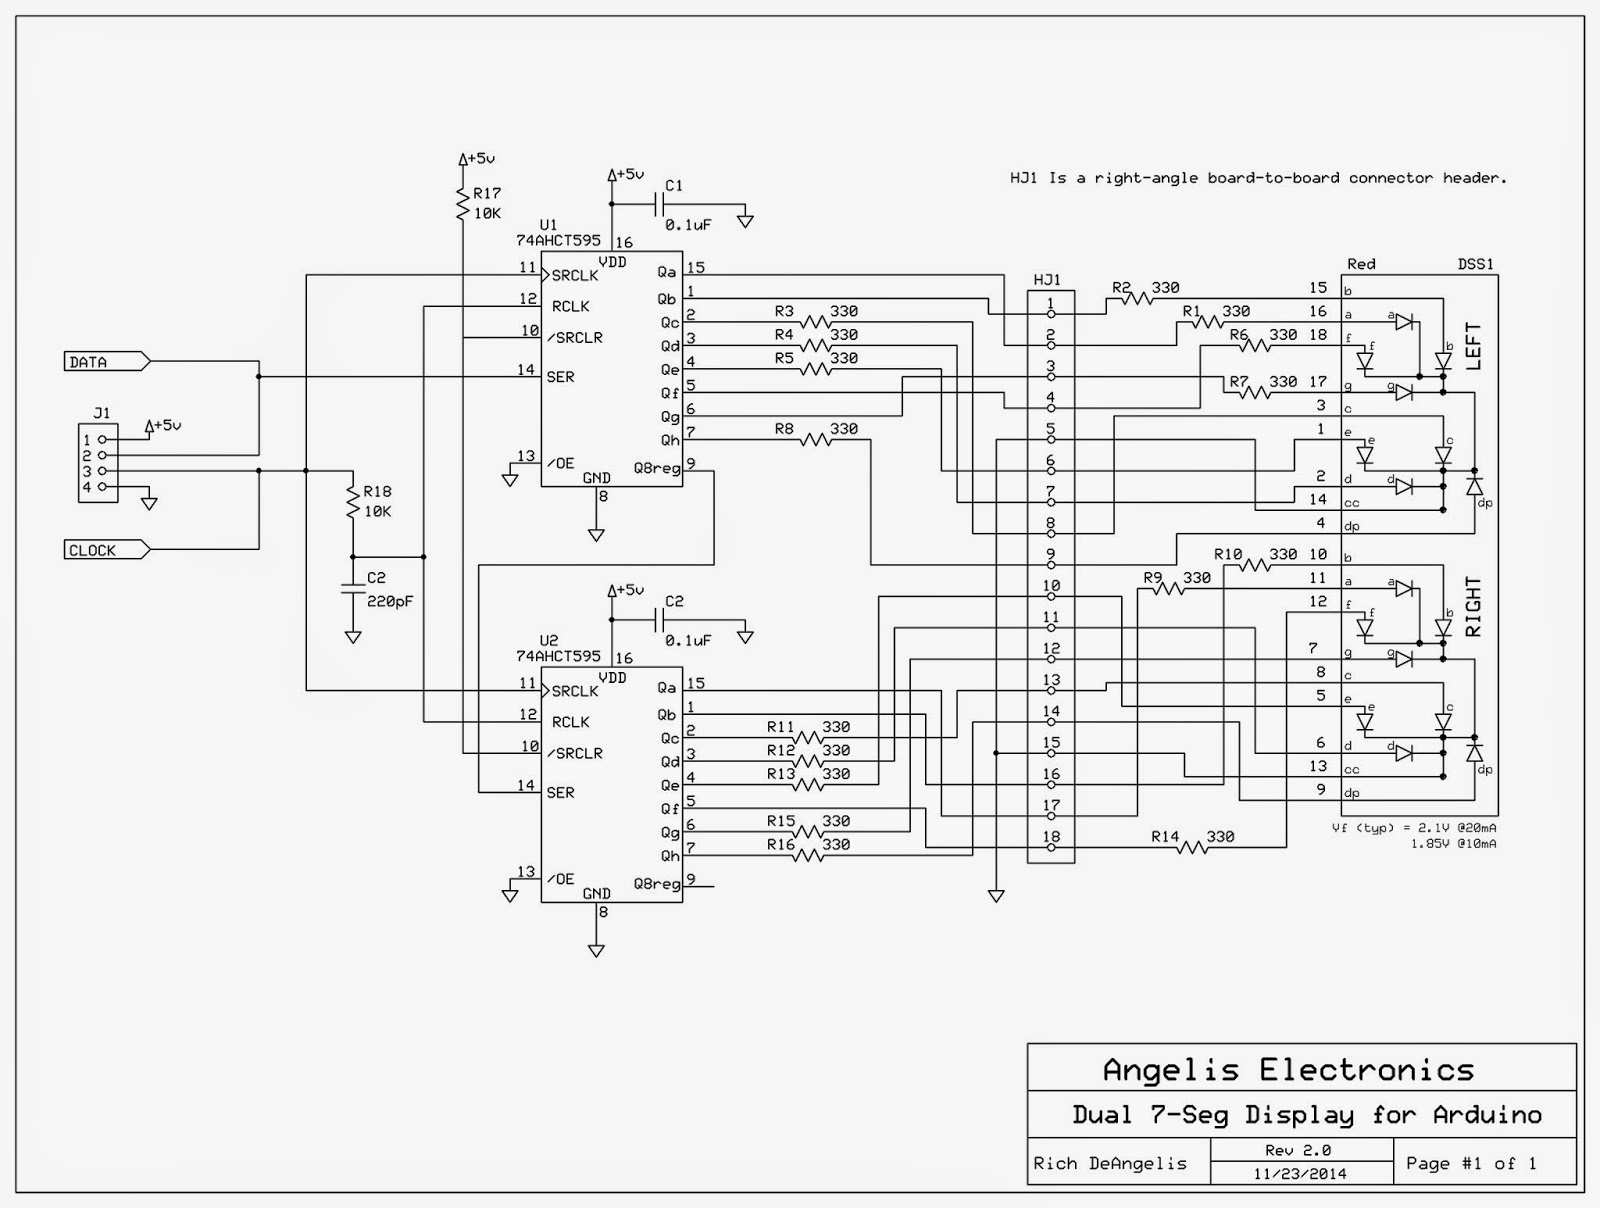 Numeric Display For Breadboard Arduino Angelis Electronics Rgb 3 Watt Led Color Mixer Controller Circuit Making Use Of Ic Lm317 Shift Output That Needs Only Two Outputs And A Few Samples Register Chip I Wanted To Test Out Here Is The Schematic My Latest Project